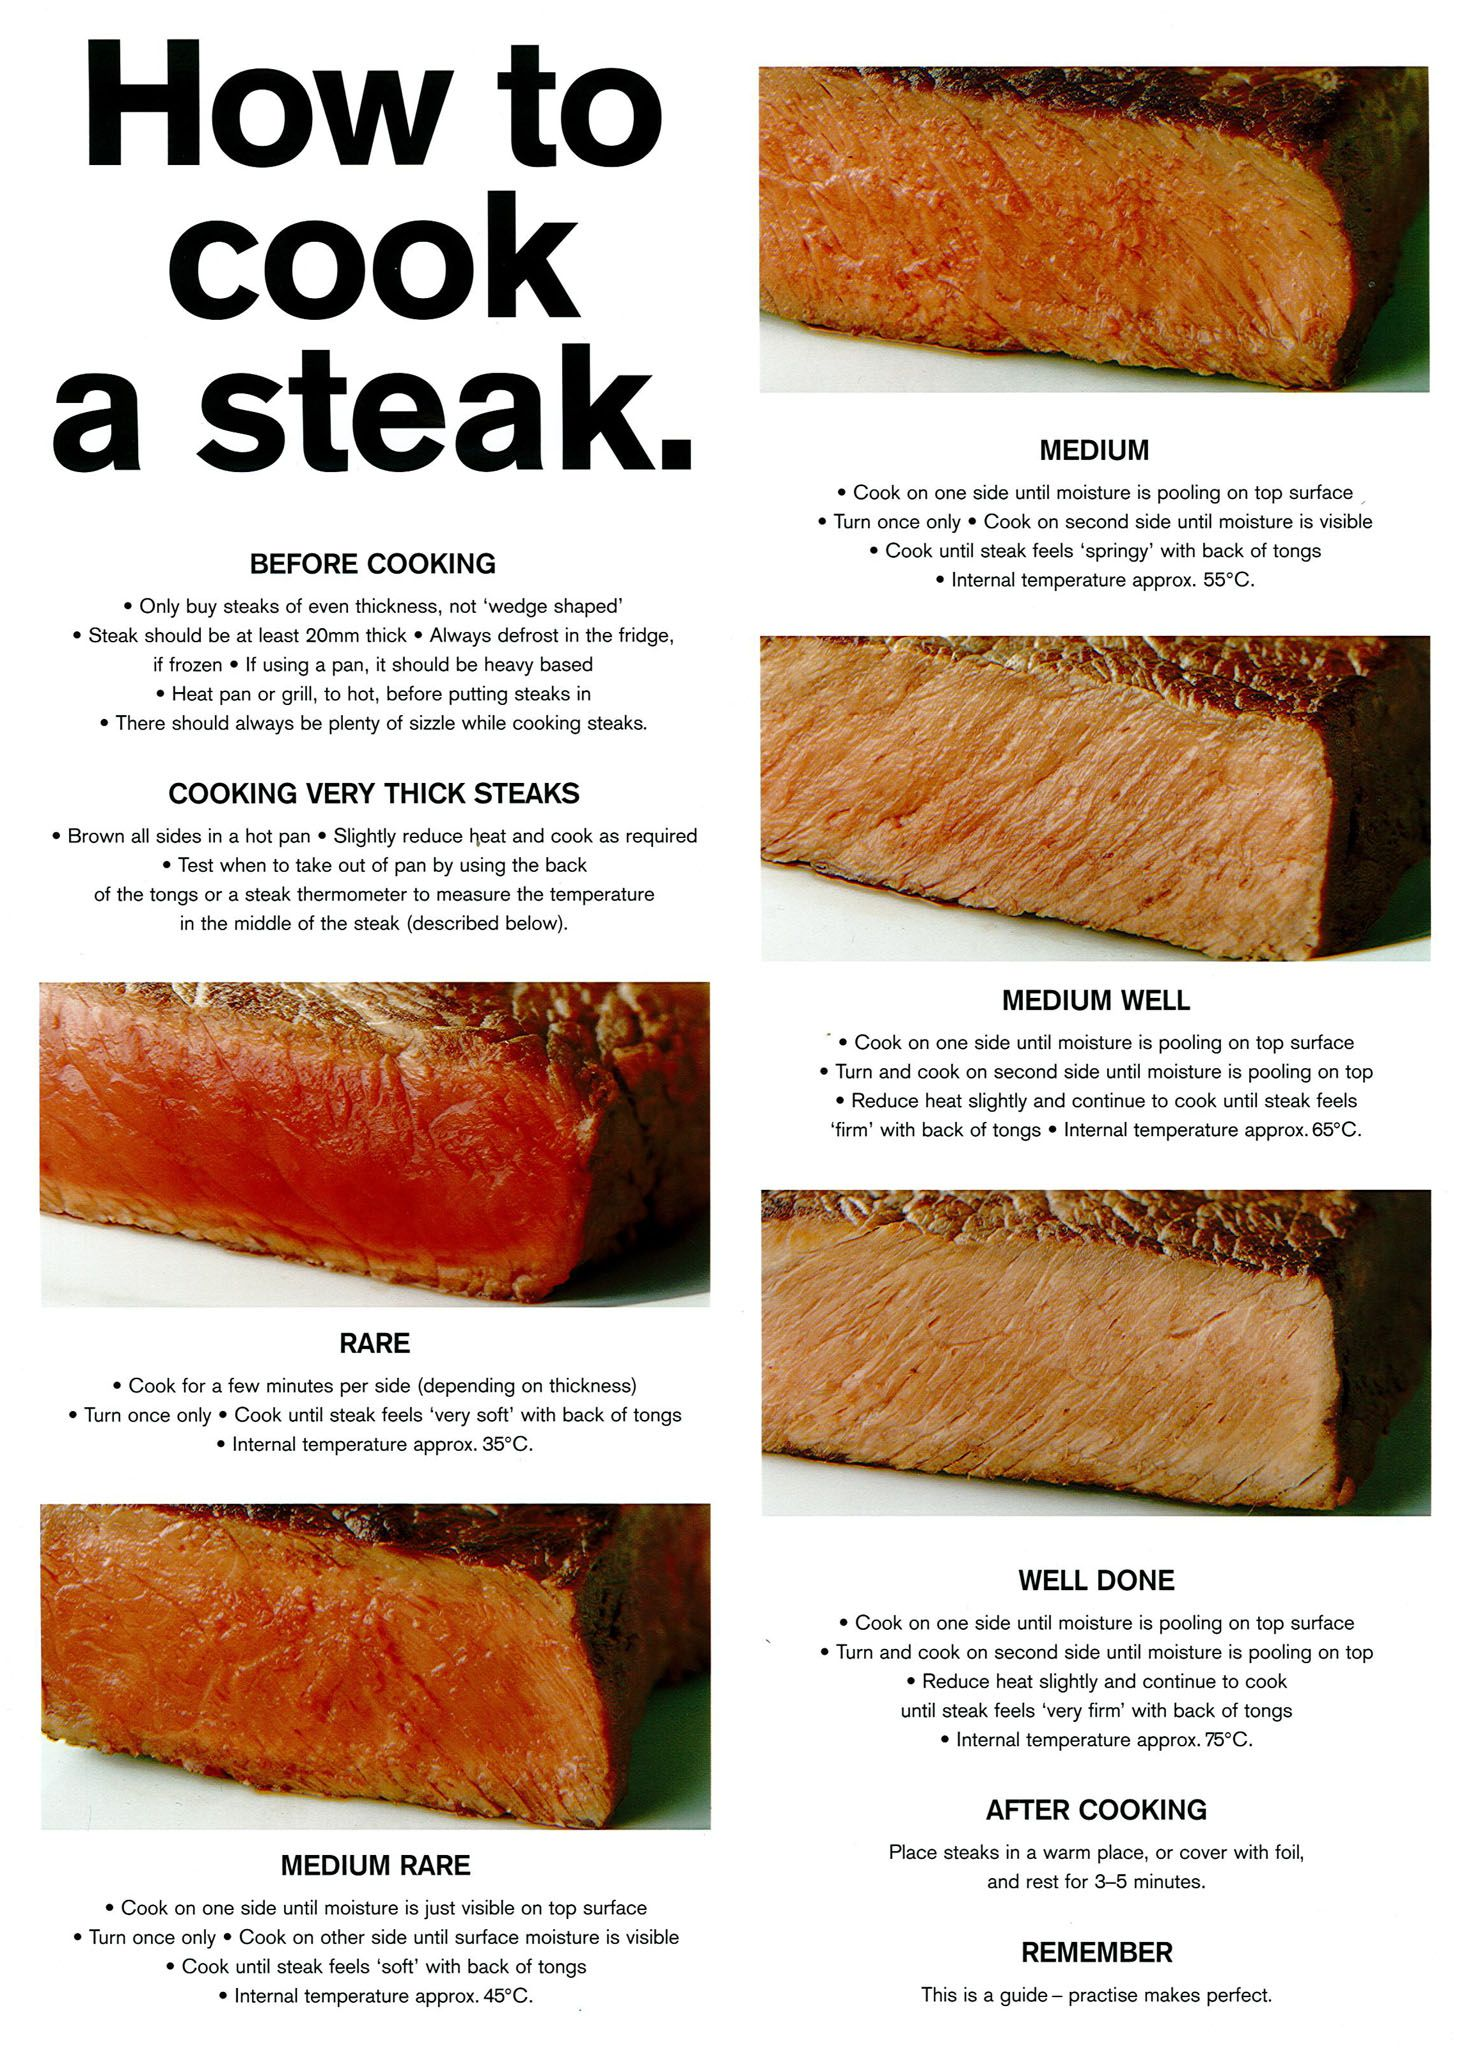 how to grill top sirloin steak well done